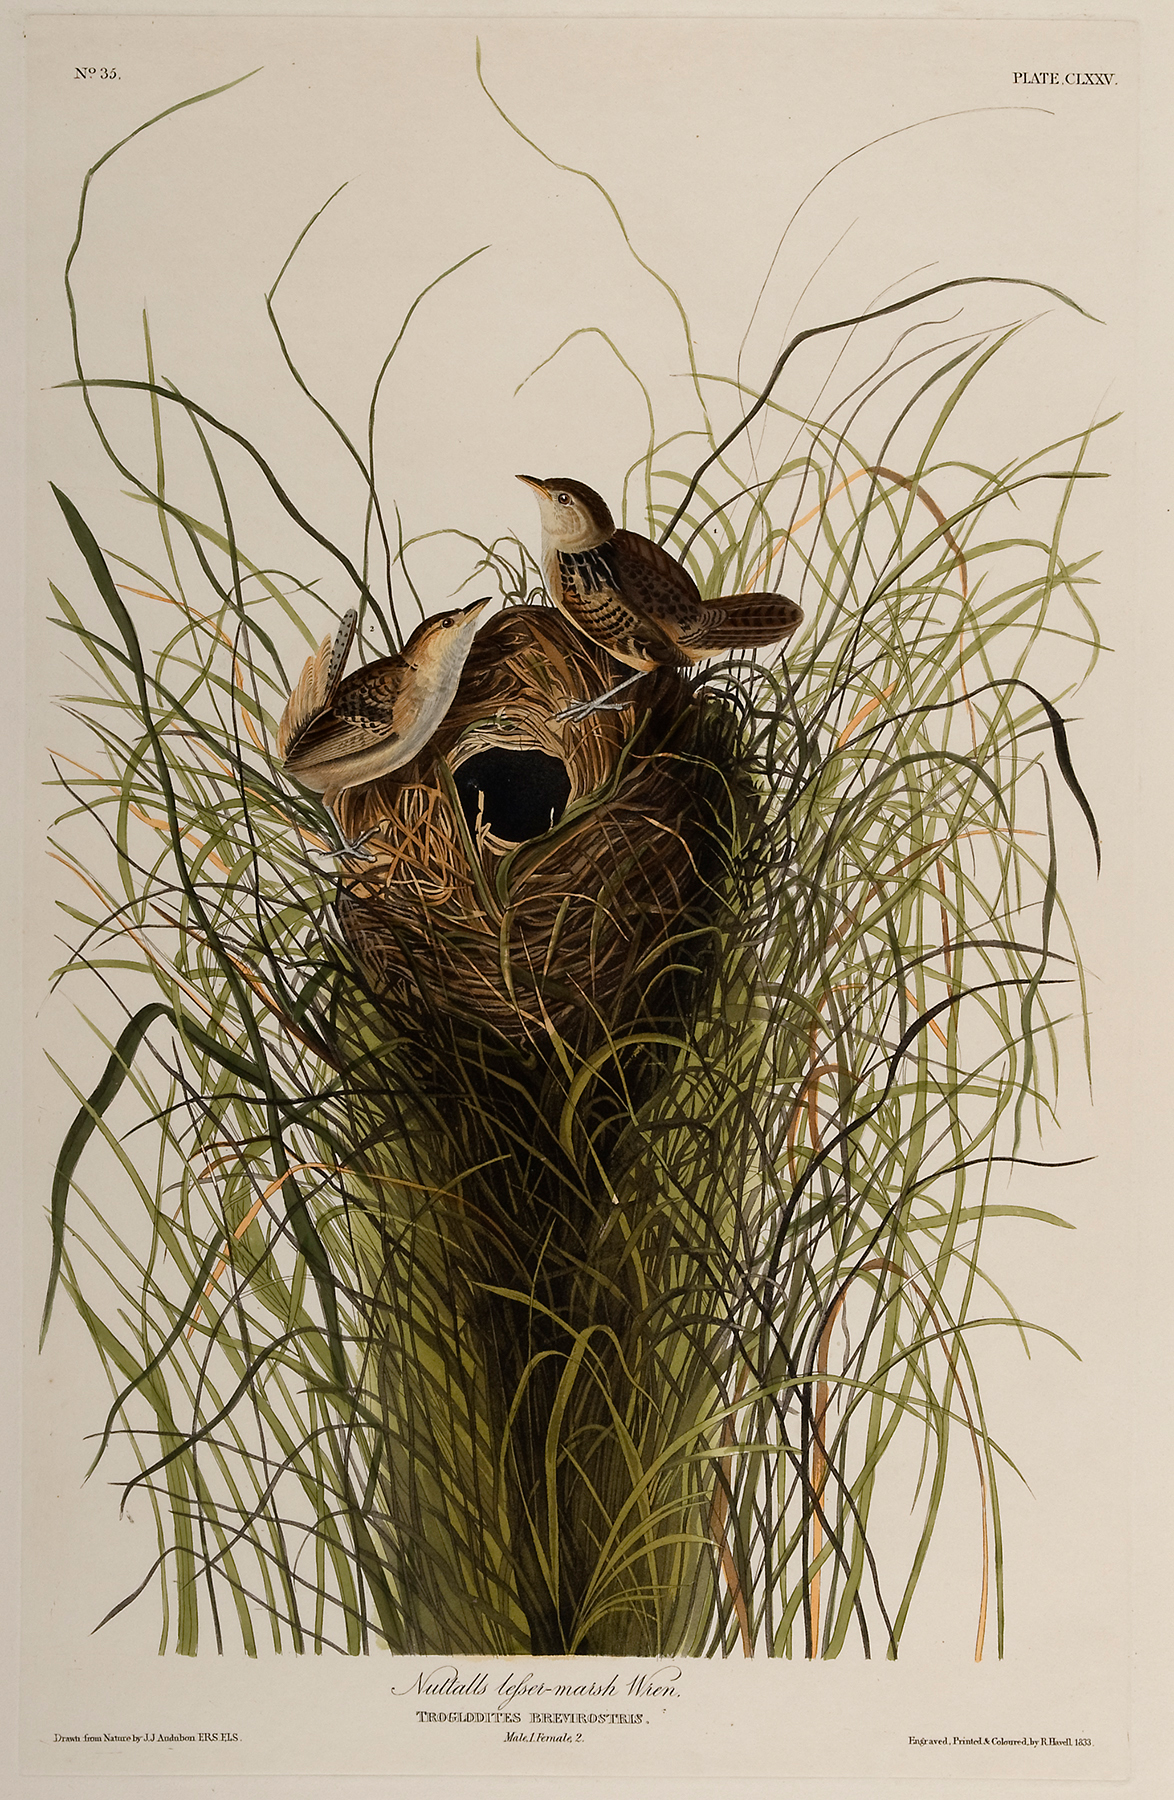 Two wrens build a nest.